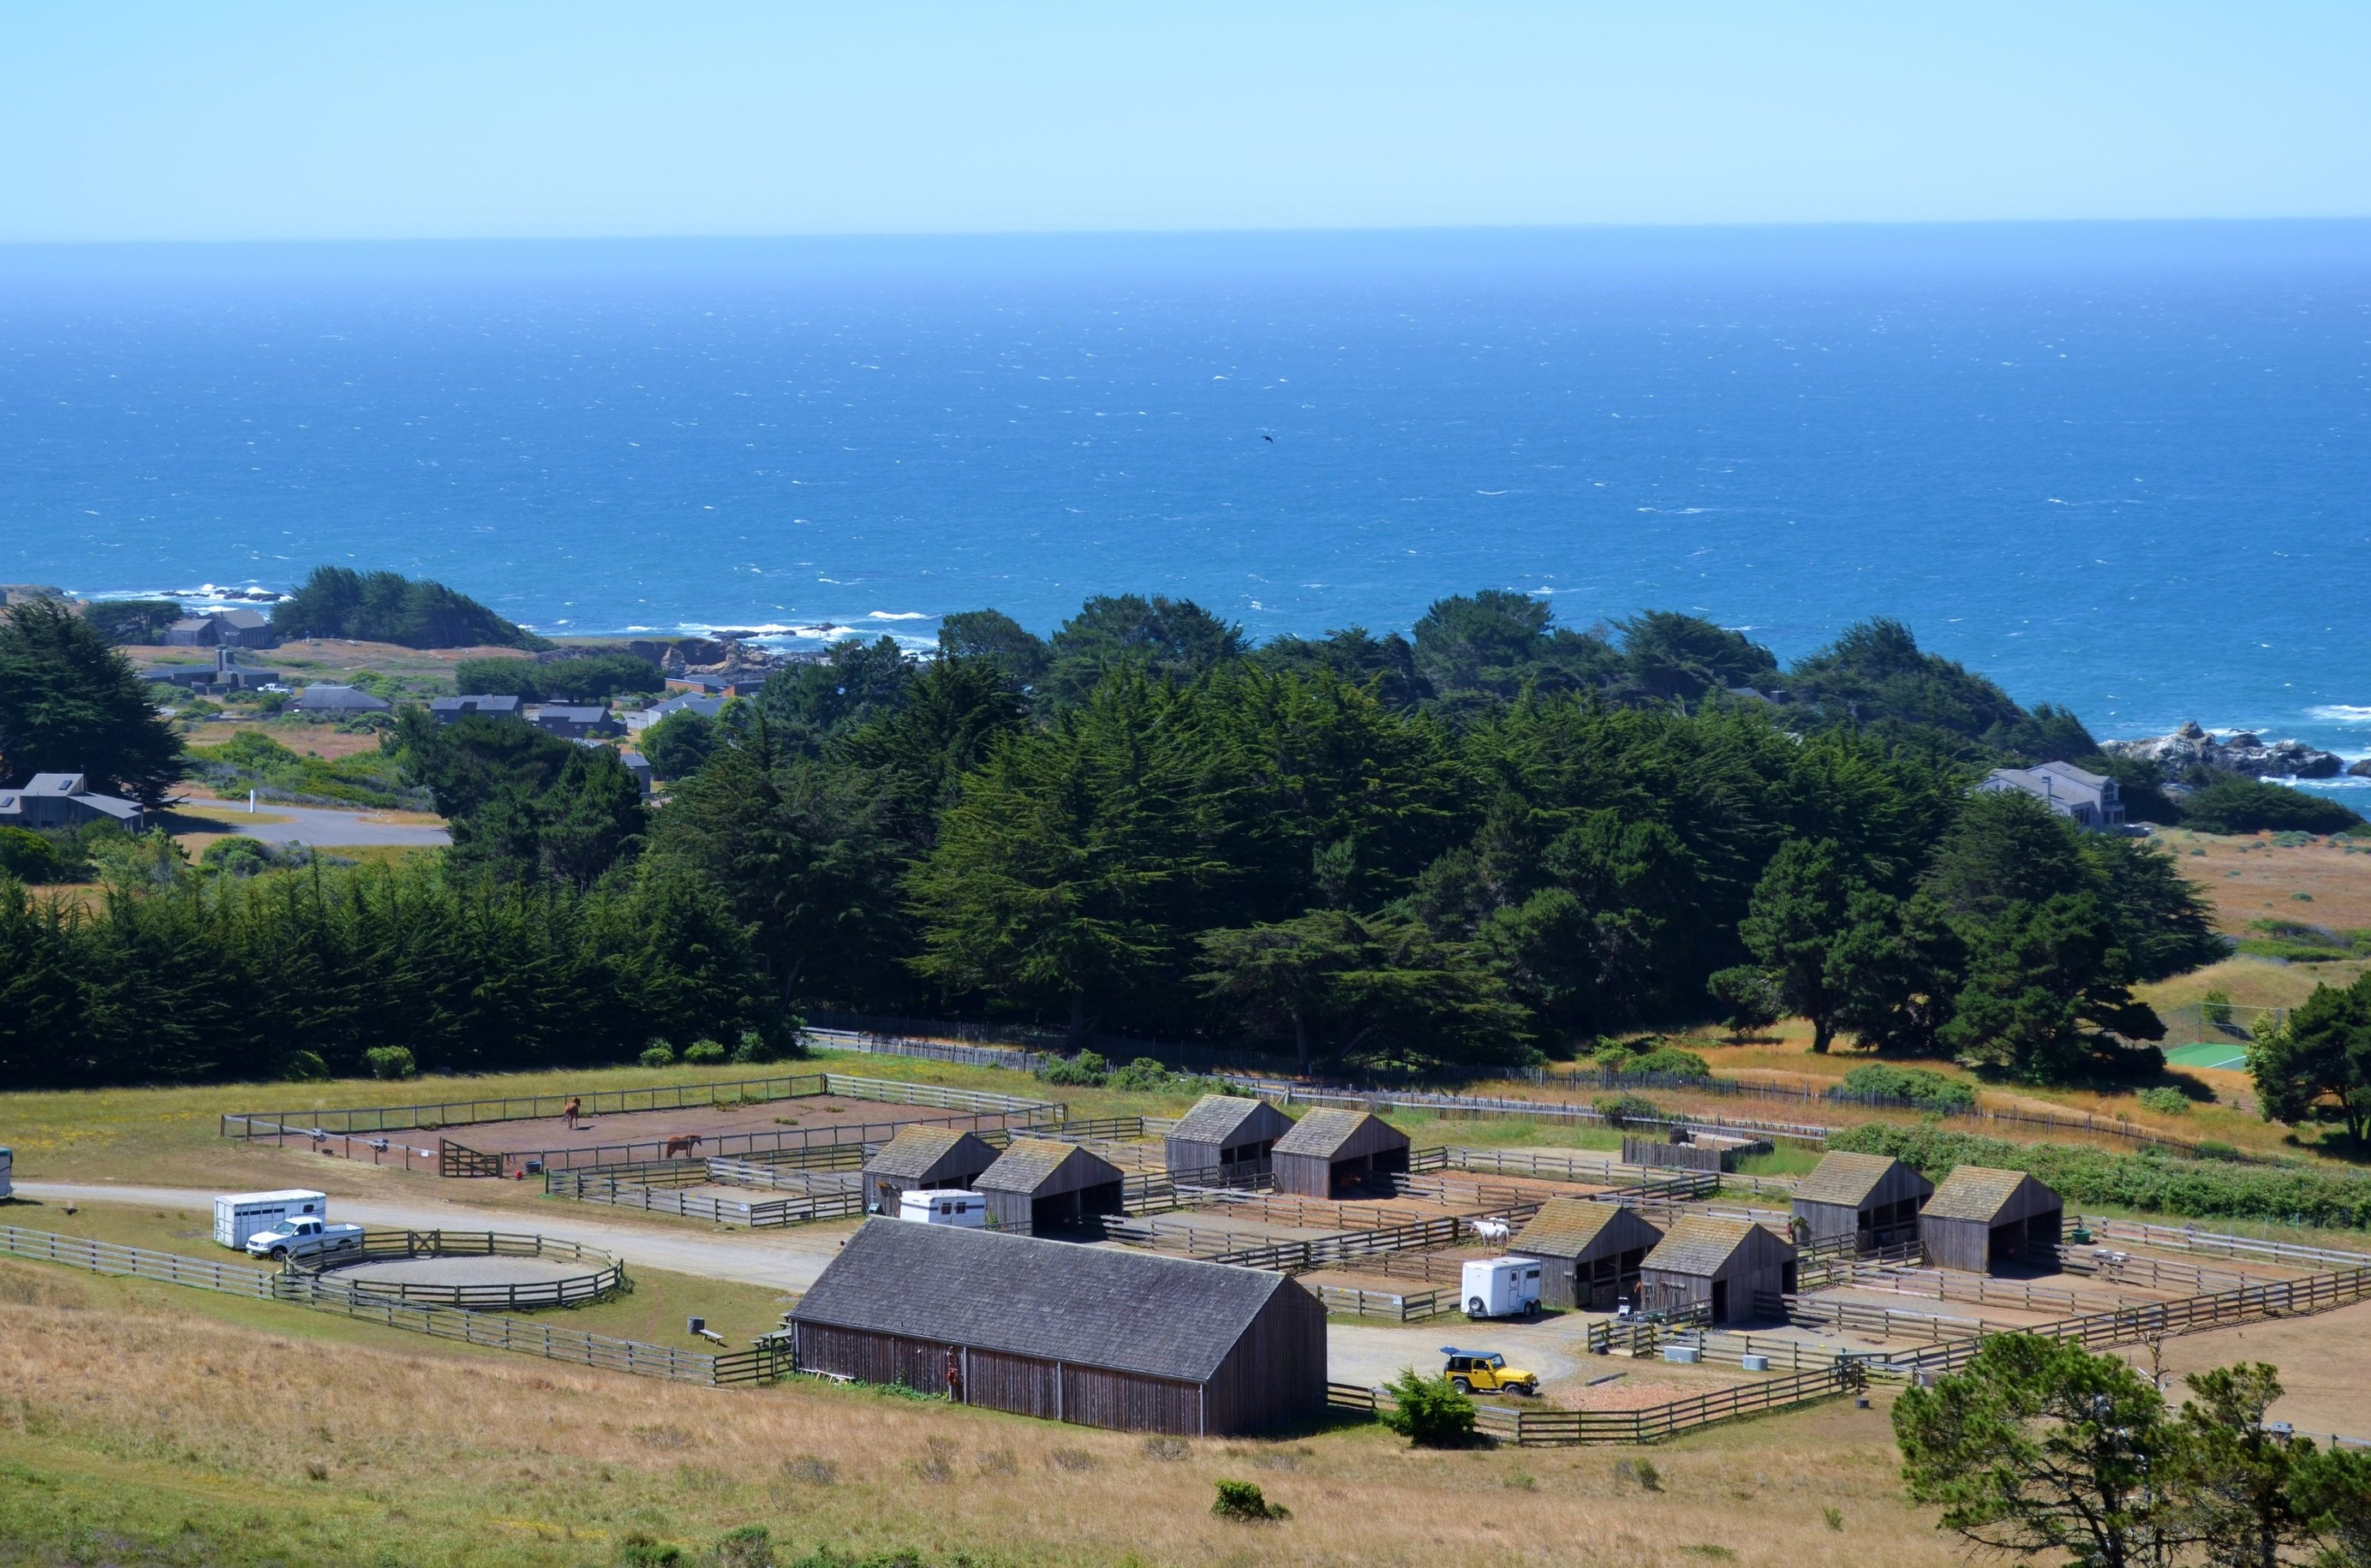 The Sea Ranch equestrian center and stables